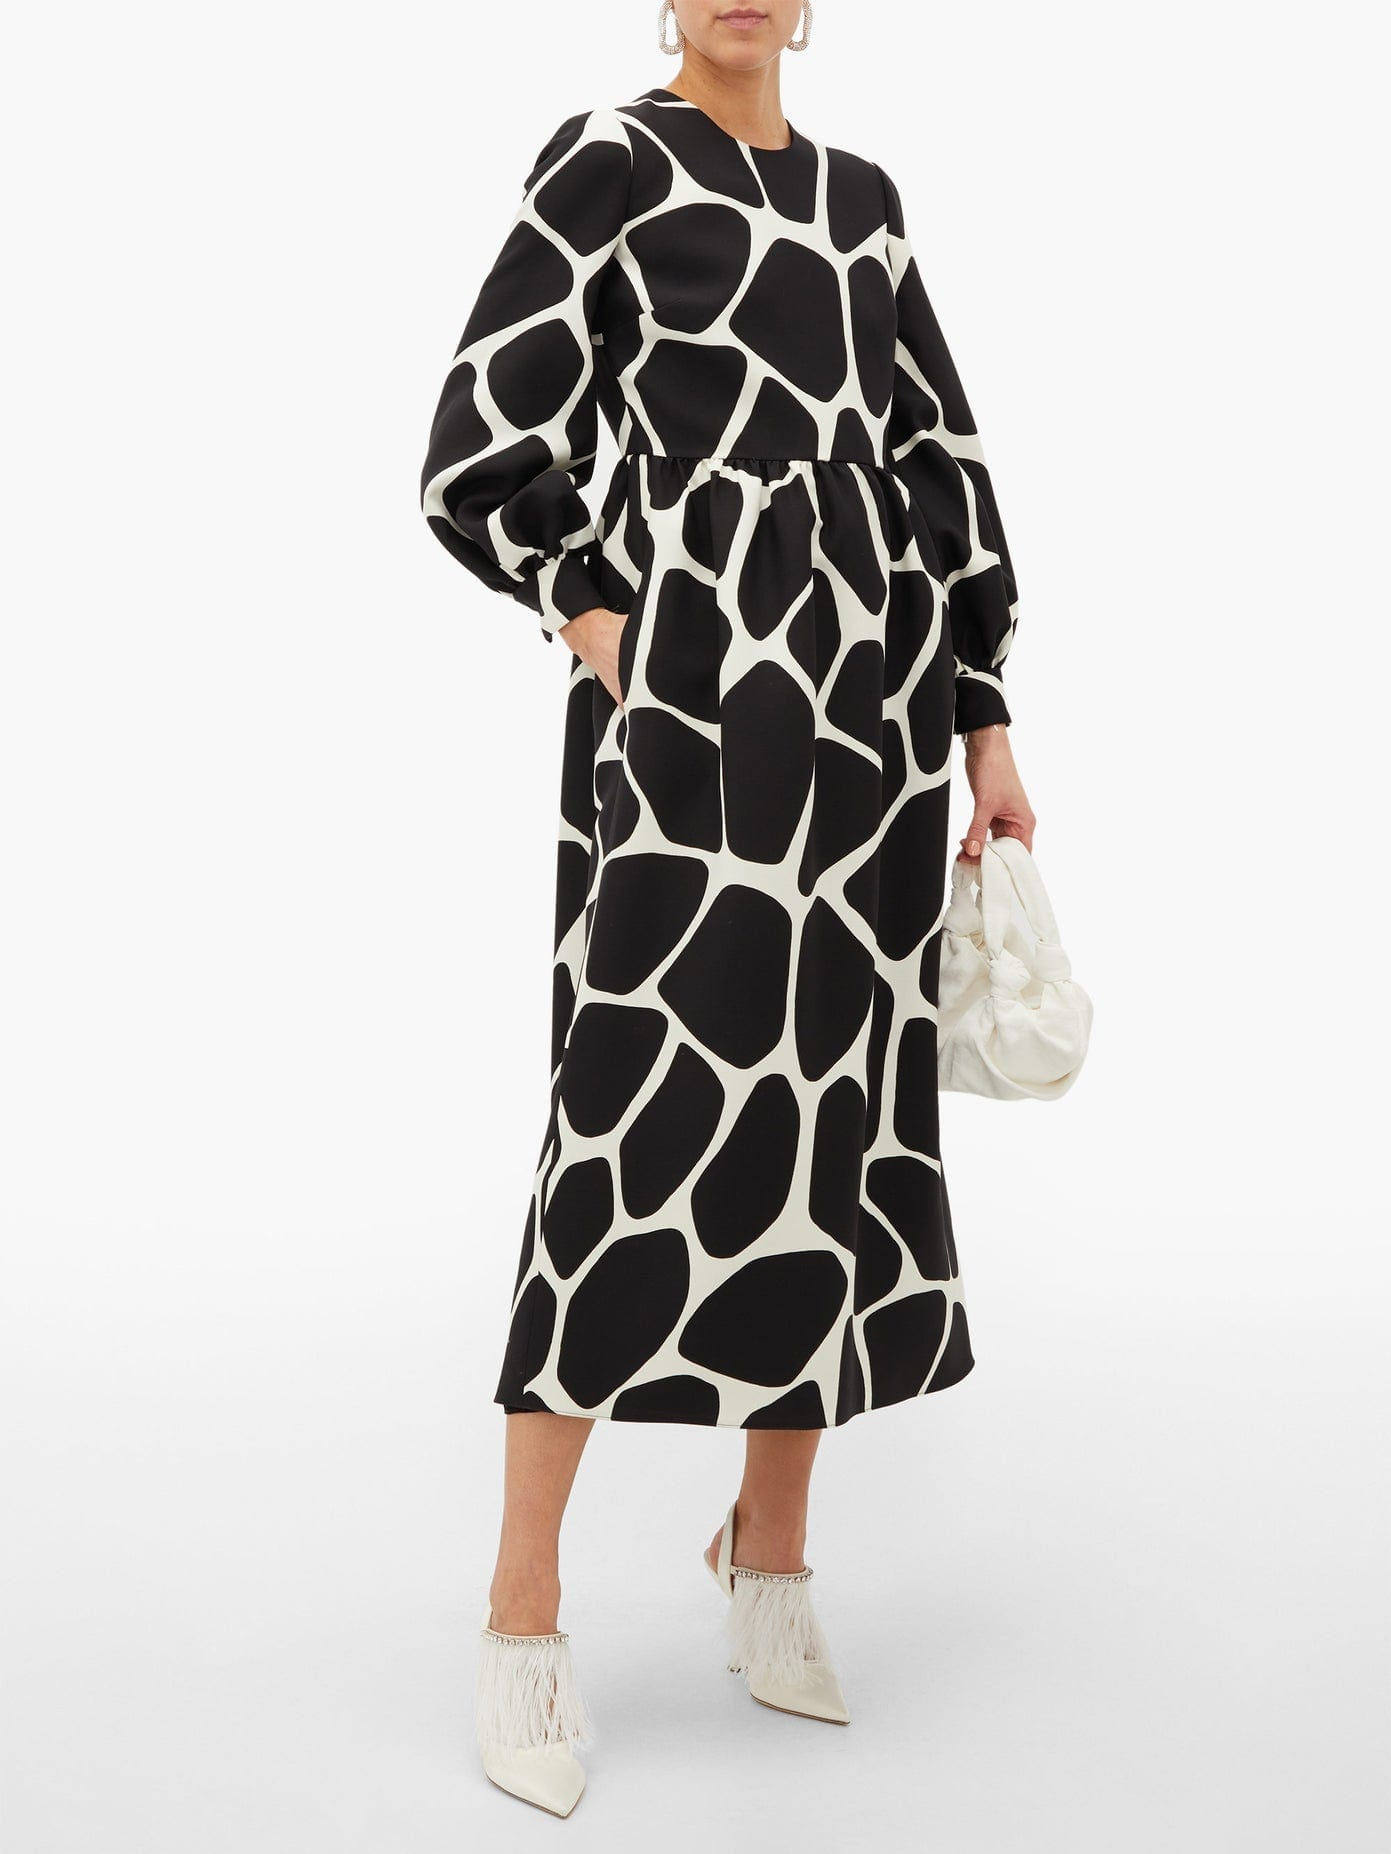 VALENTINO Giraffe-Print Wool-Blend Dress